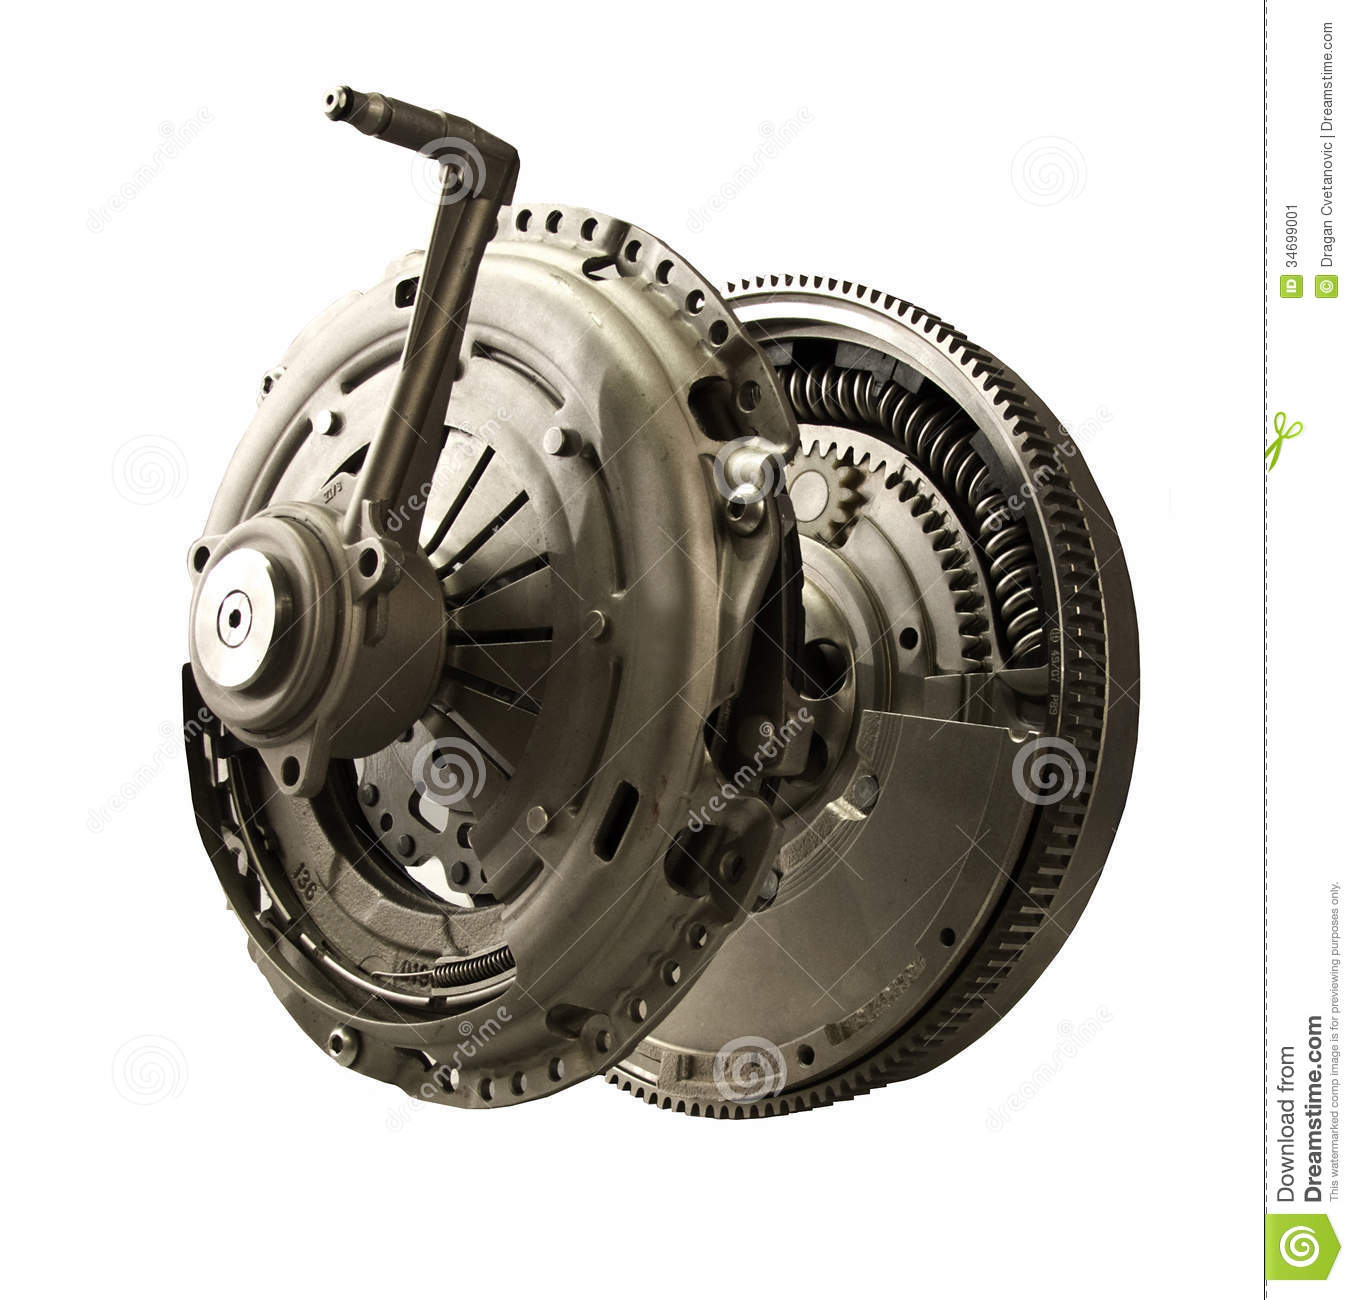 RepairGuideContent in addition Mobile Gem Car Repair San Diego together with Electromechanical Response Brake Design moreover 4008159 additionally Tech Posts. on disc brake system diagram